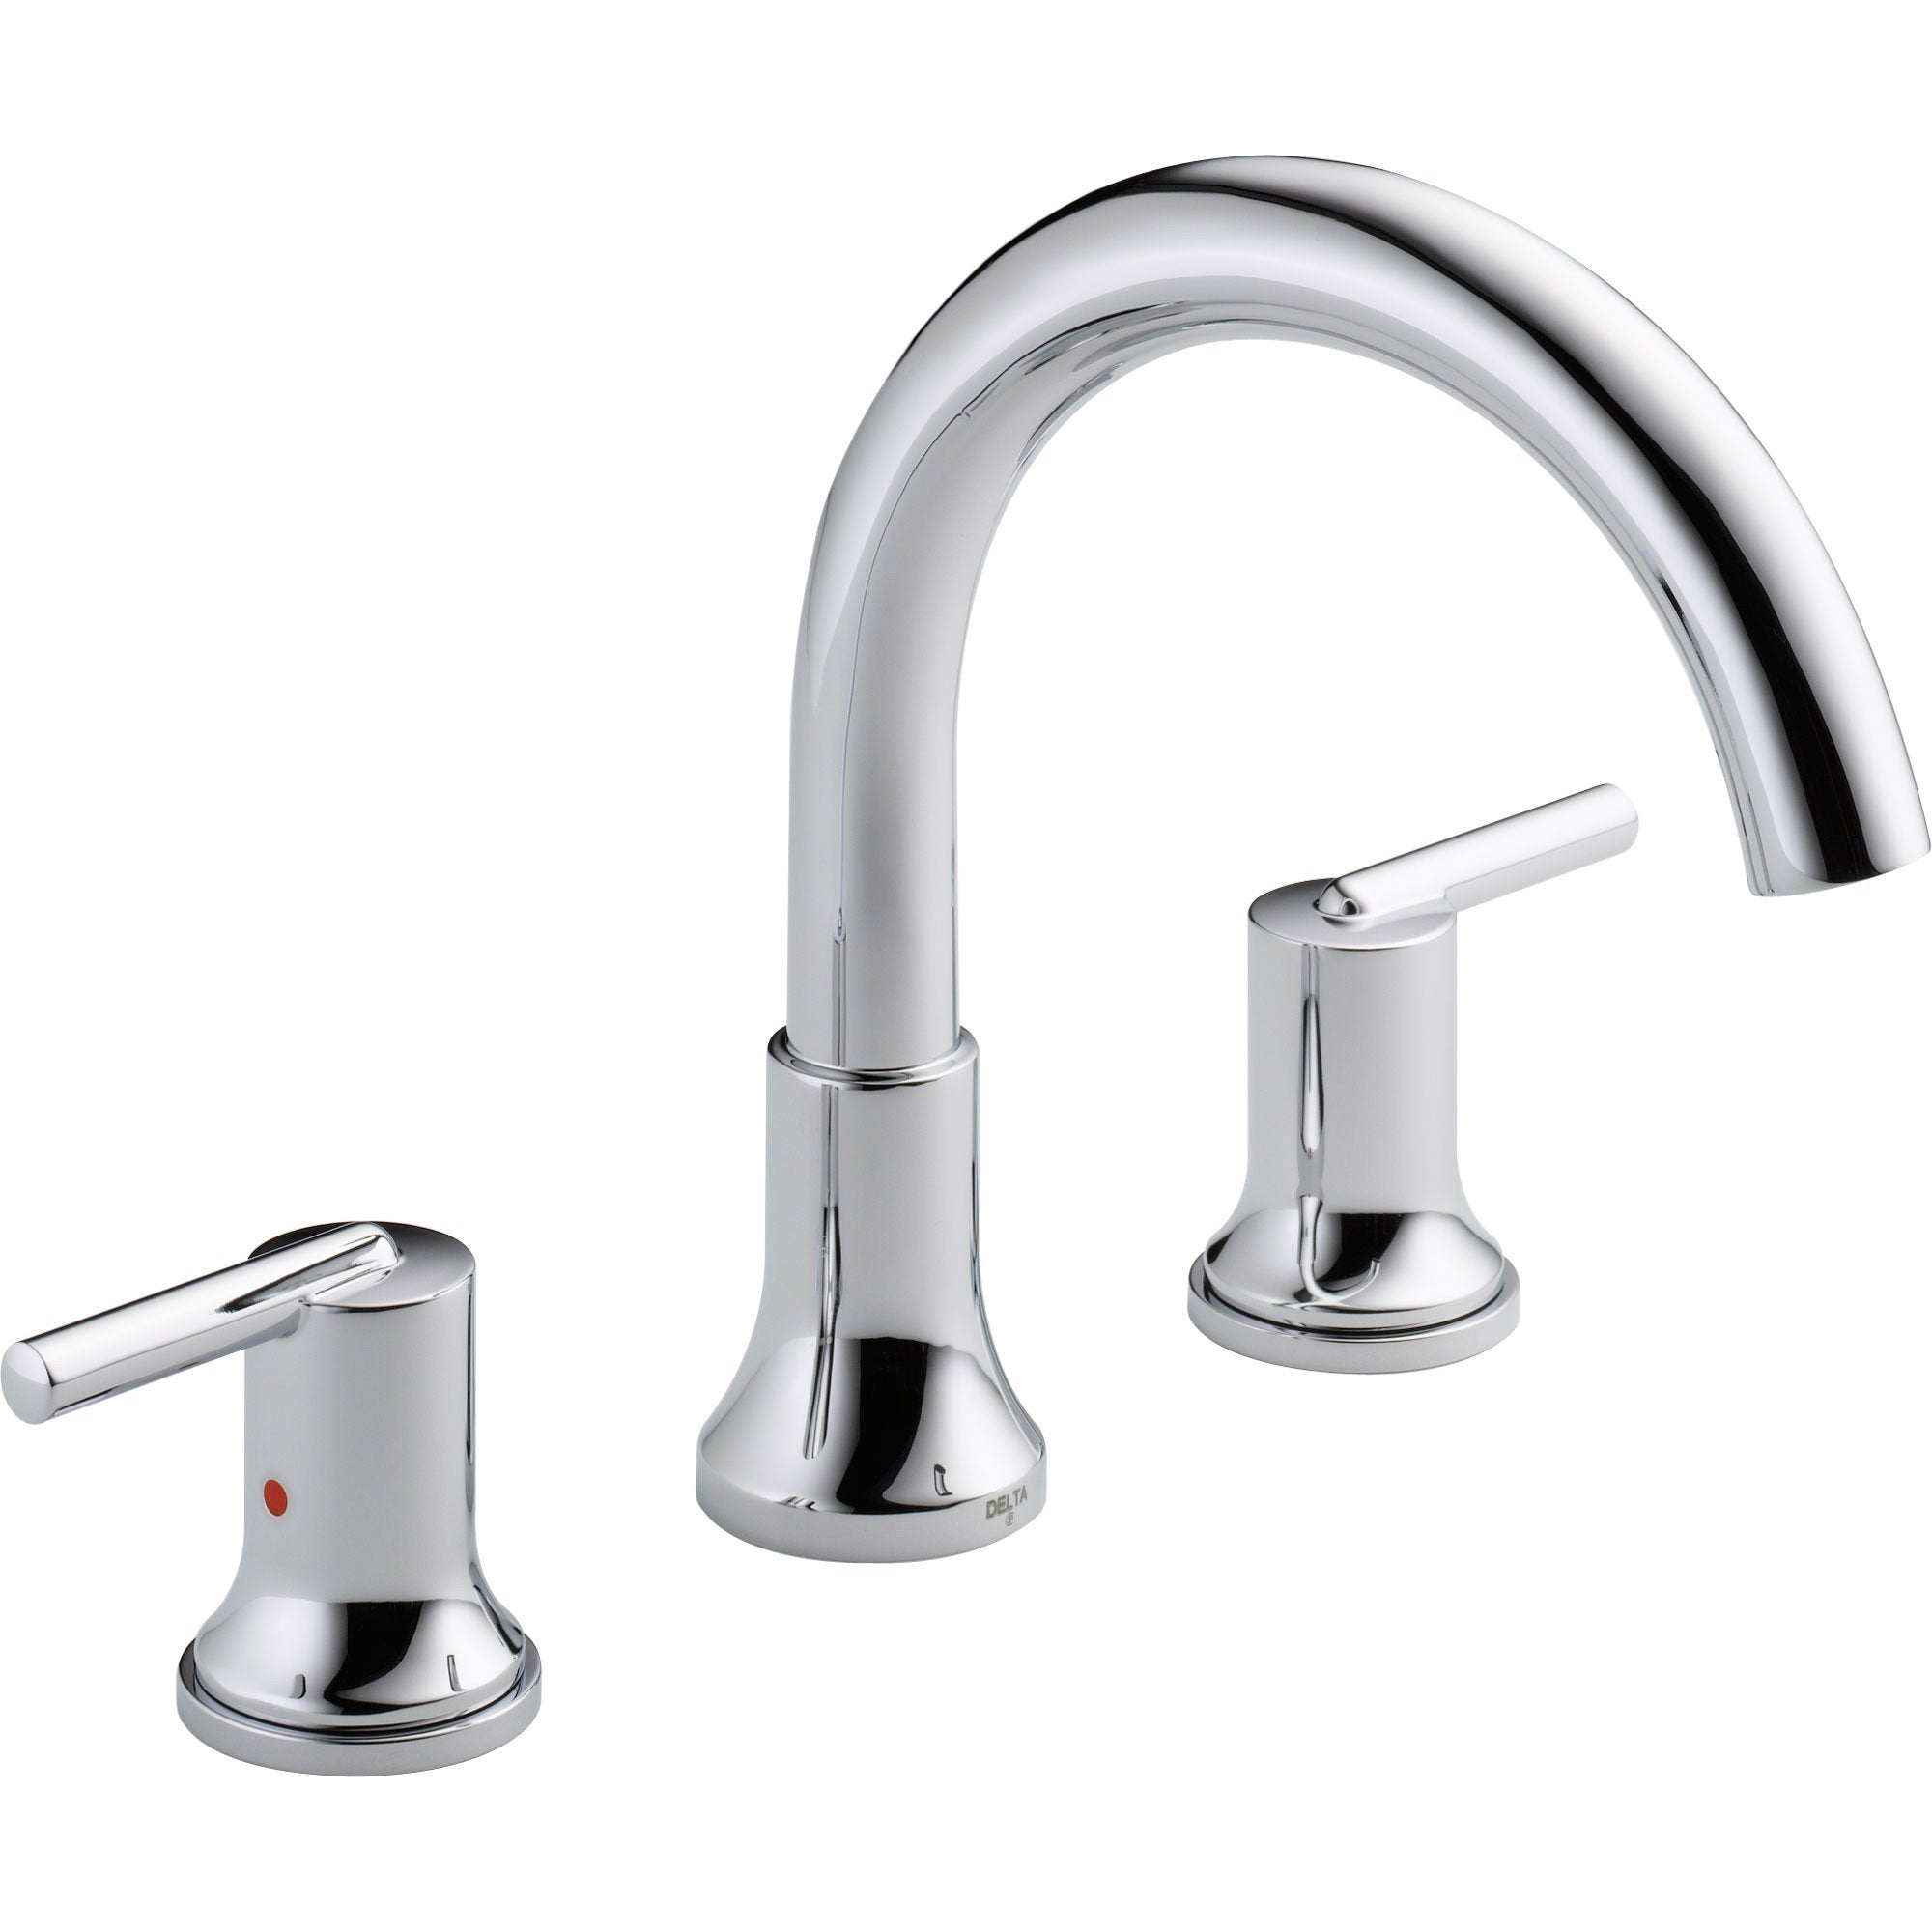 Delta Trinsic Modern Chrome 2-Handle Roman Tub Filler Faucet Trim Kit 590152